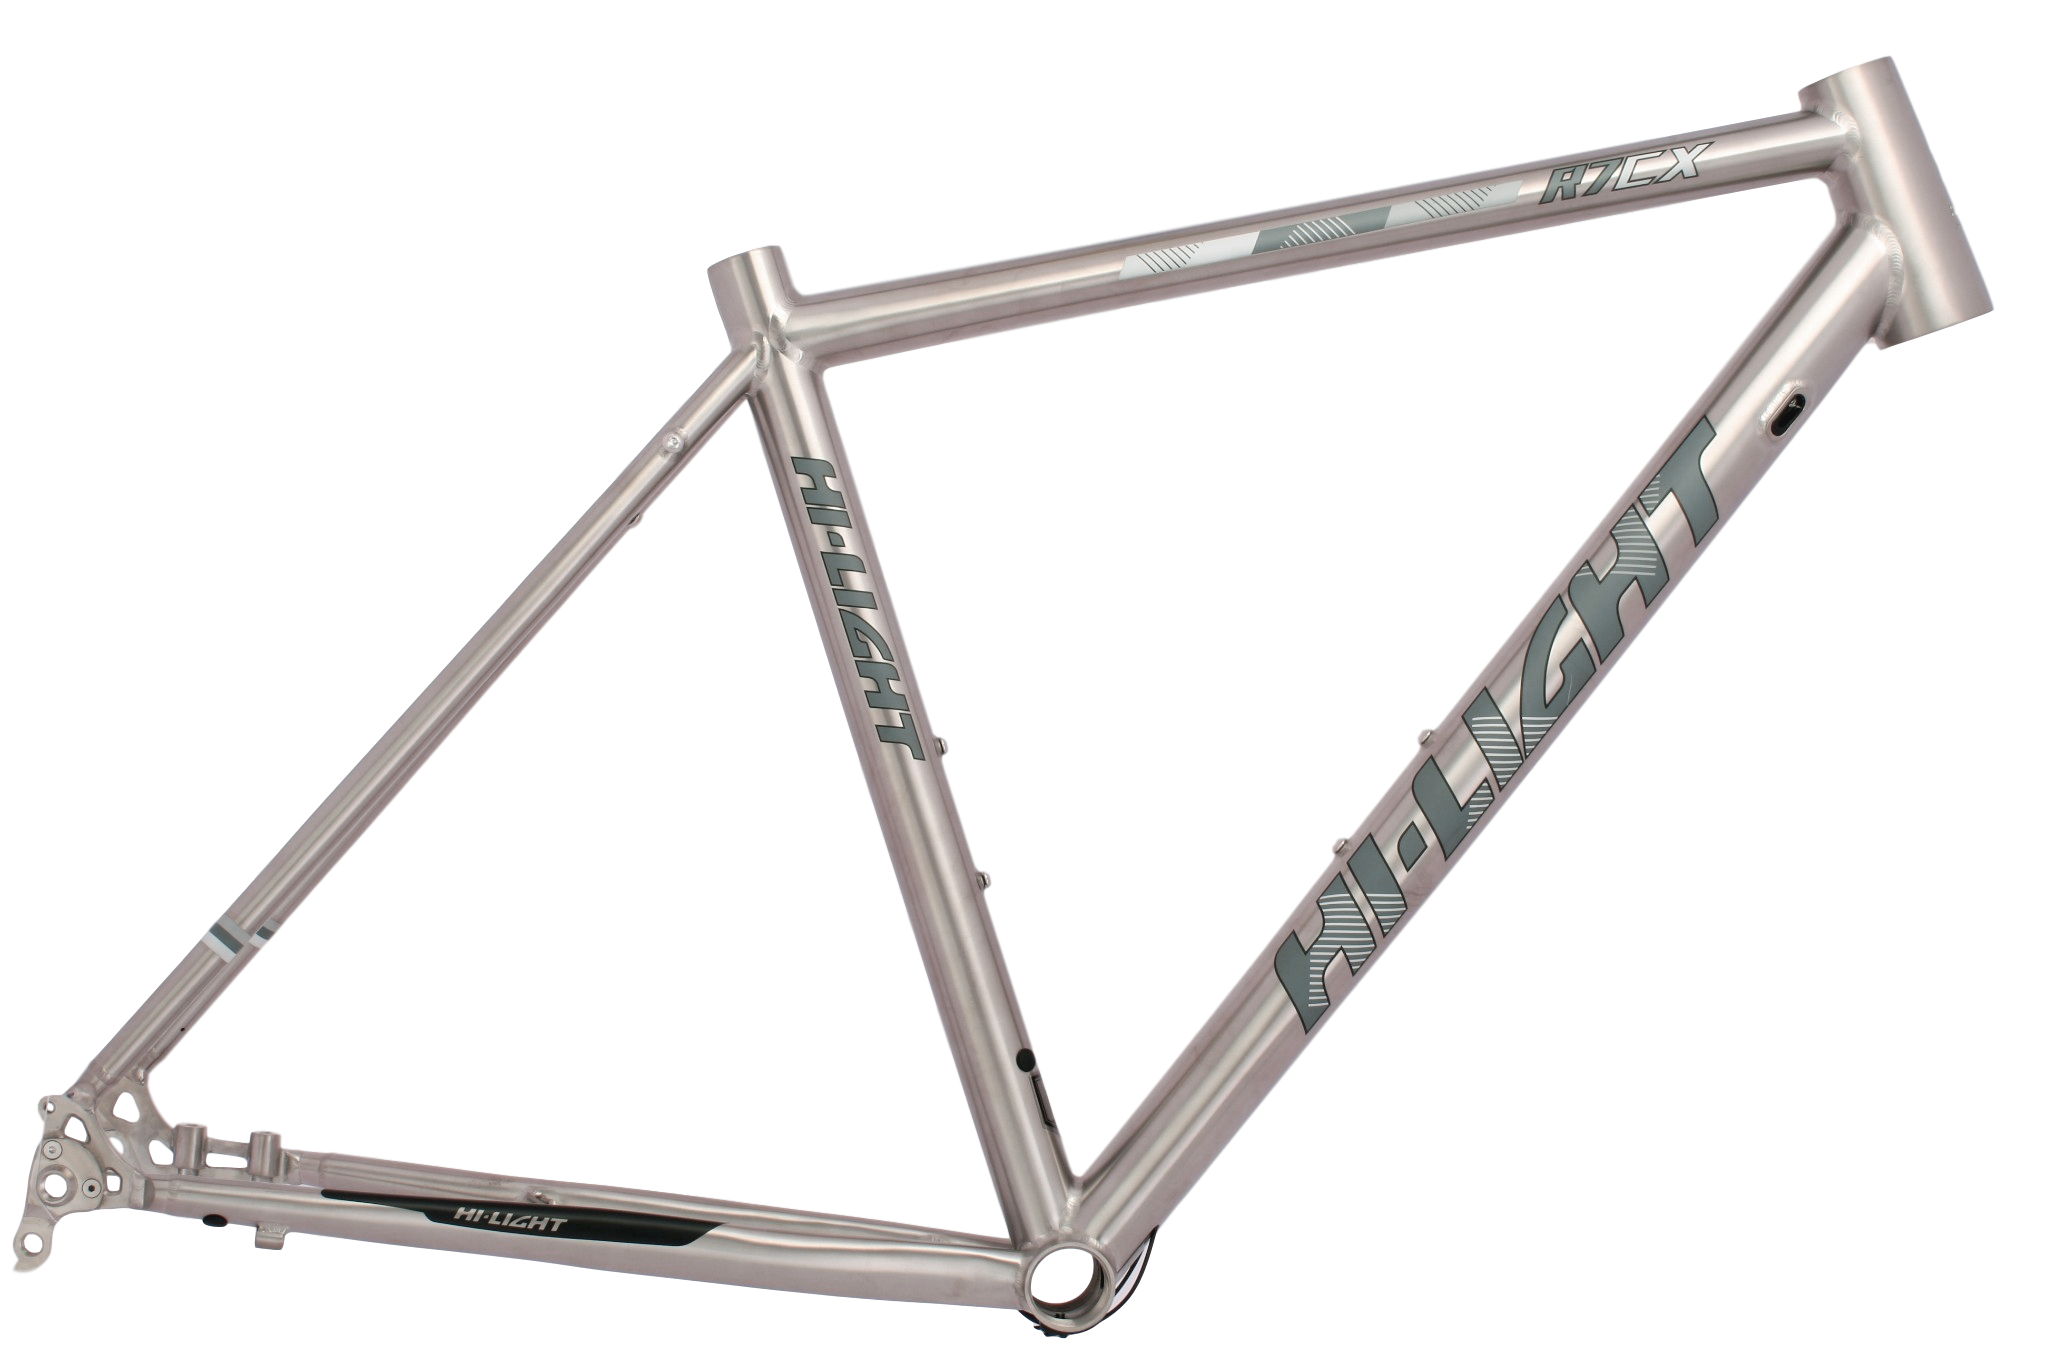 R7CX TITANIUM CYCLO-CROSS FRAME